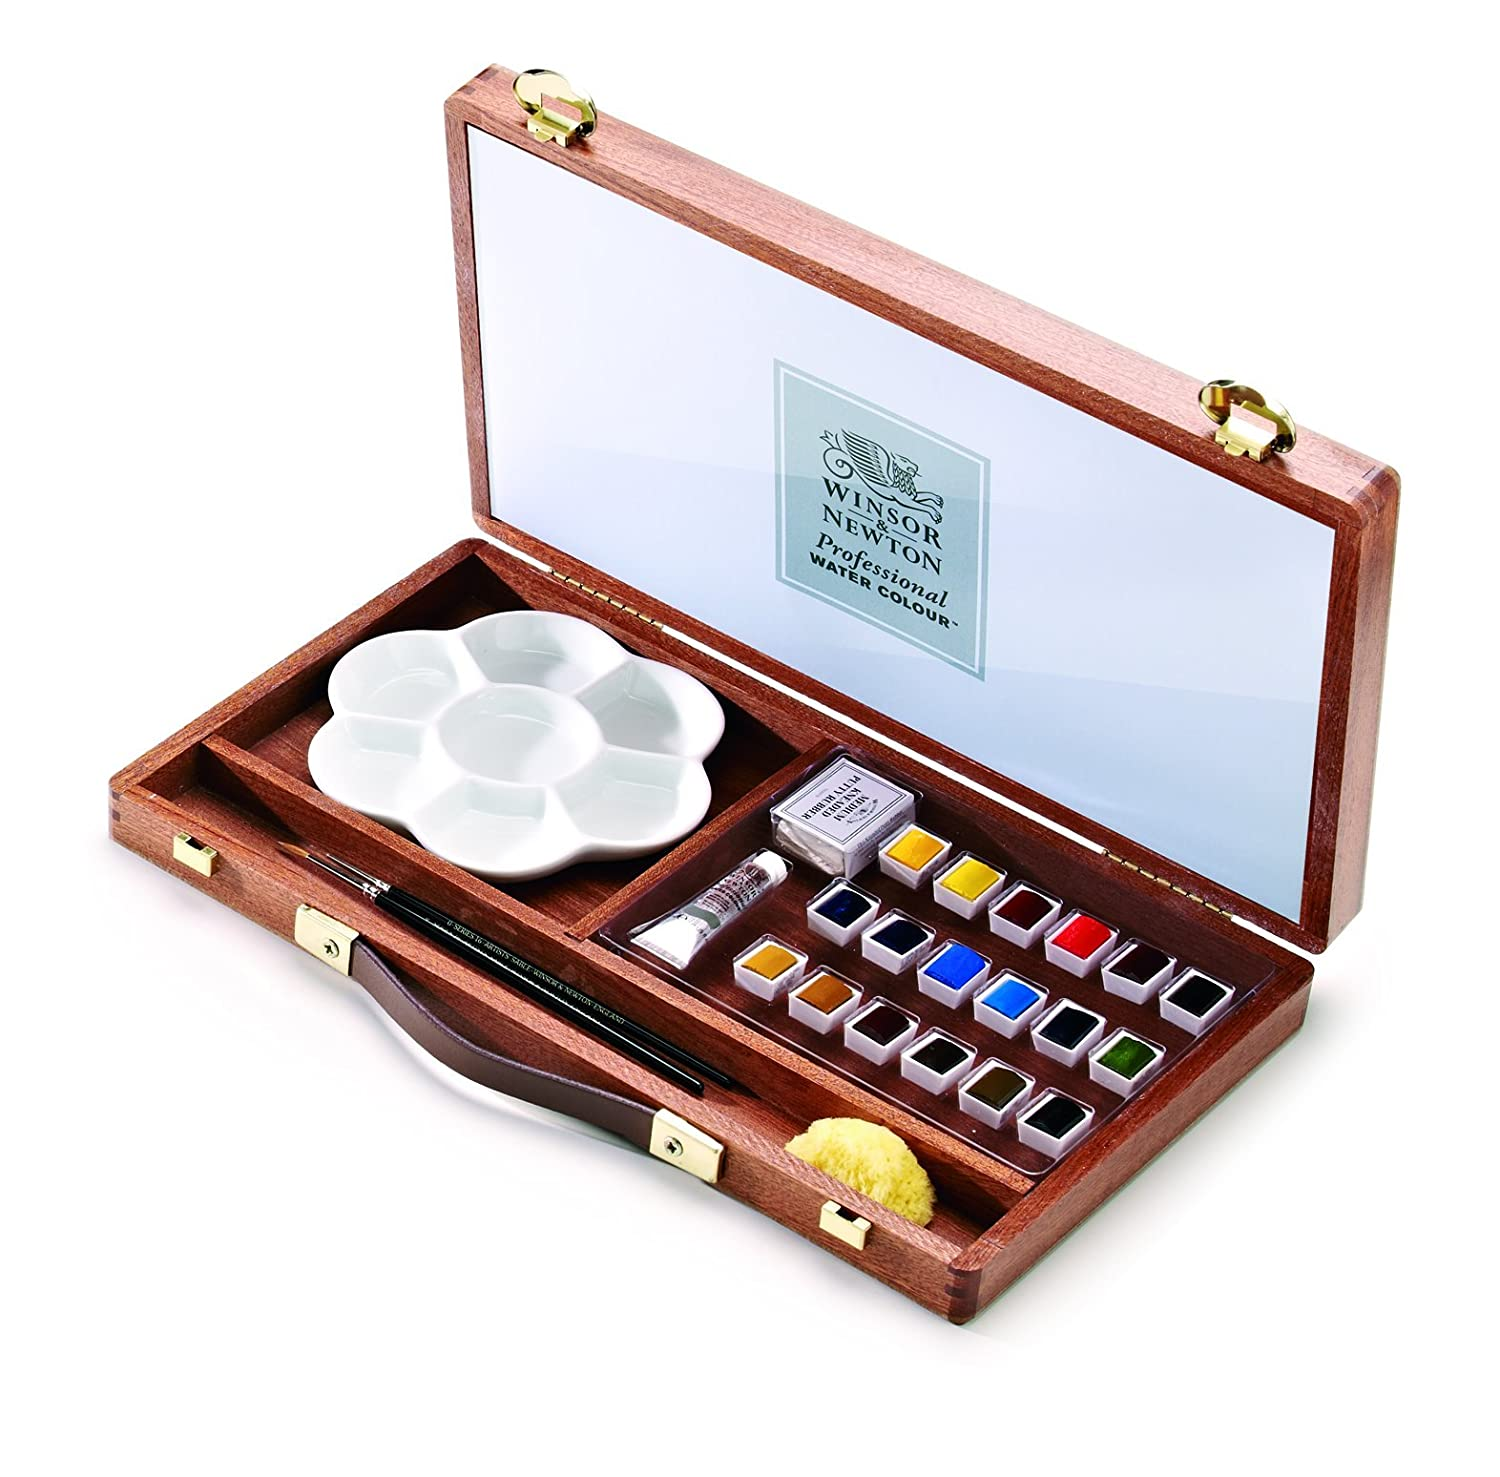 Winsor & Newton Artists' Water Colour Paint Set - Piccadilly Wood Box